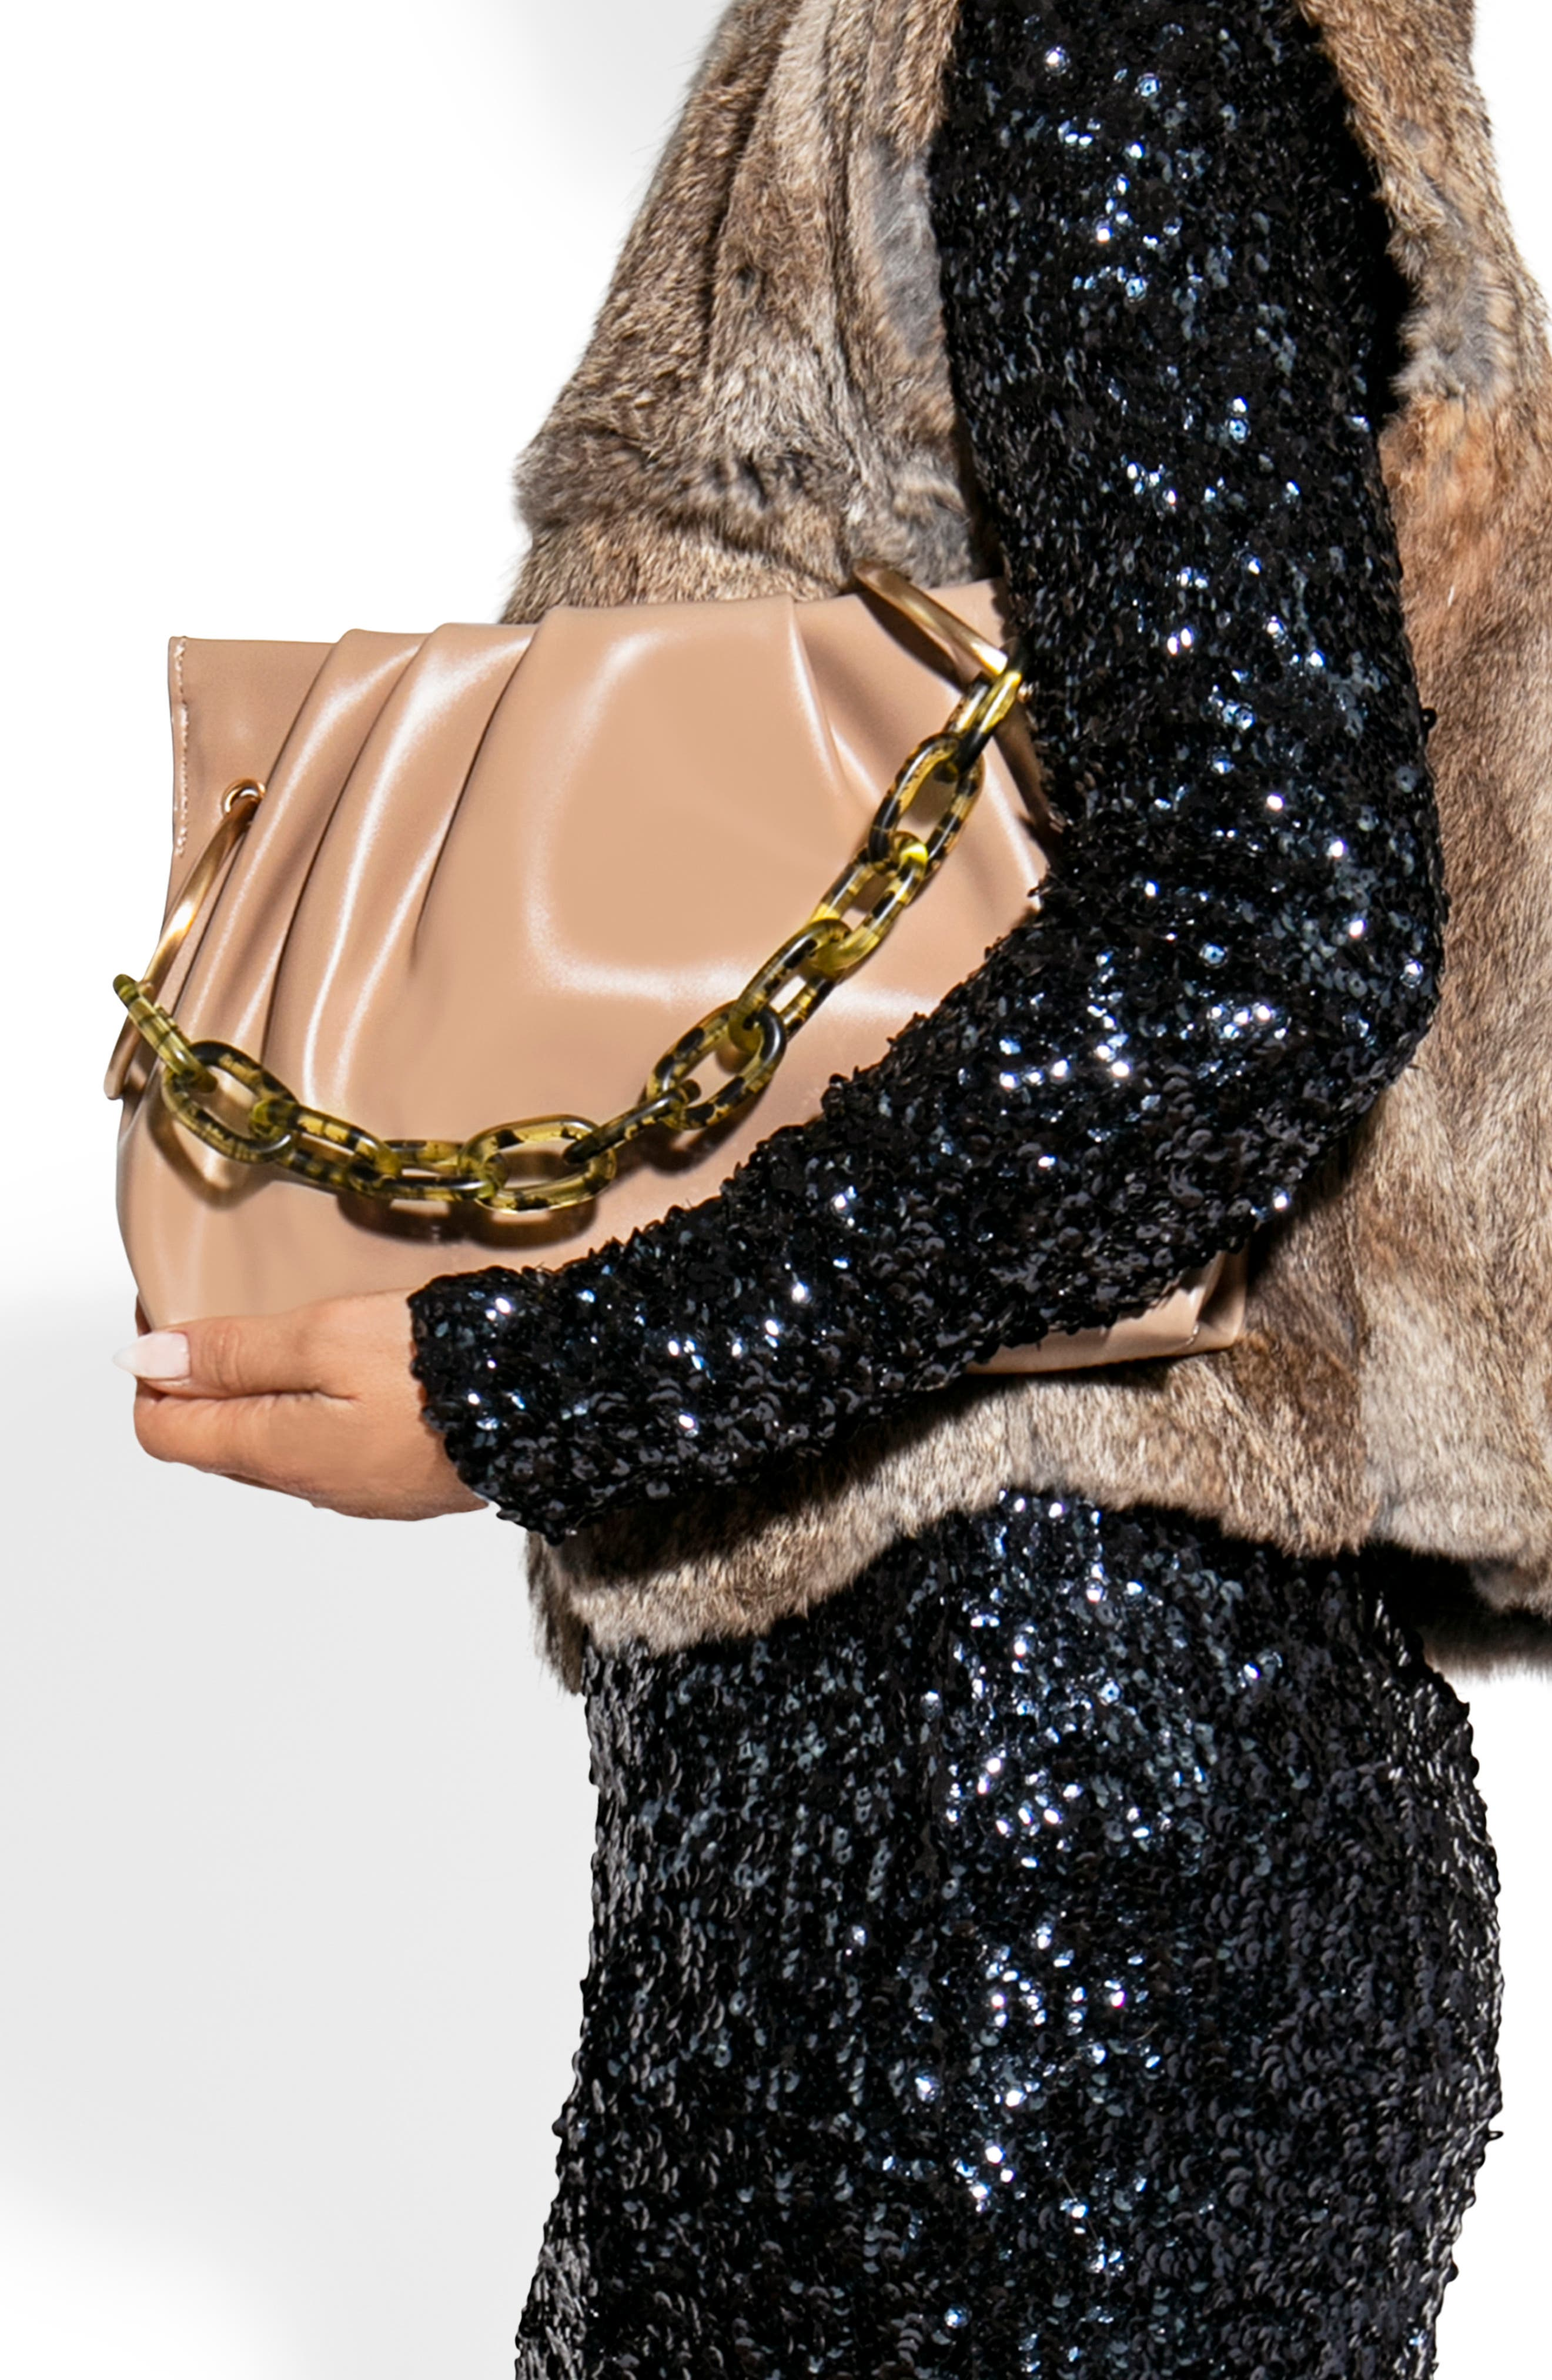 The Slouchy Handbag Trend That We Love And Gonna See Everywhere Next Year